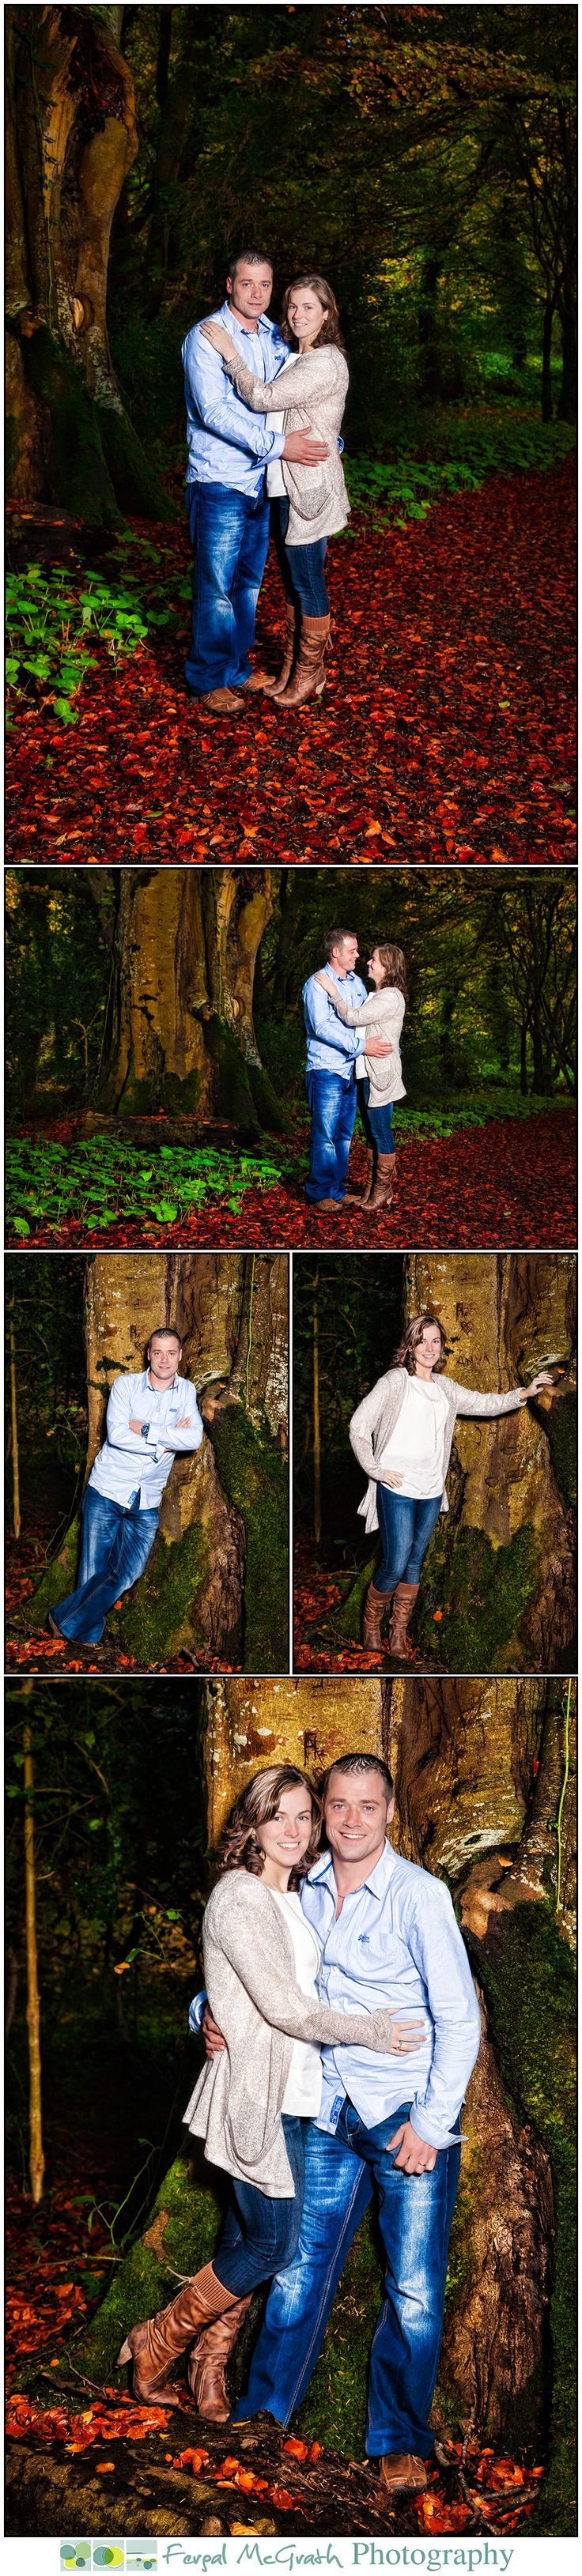 fermanagh portrait photography